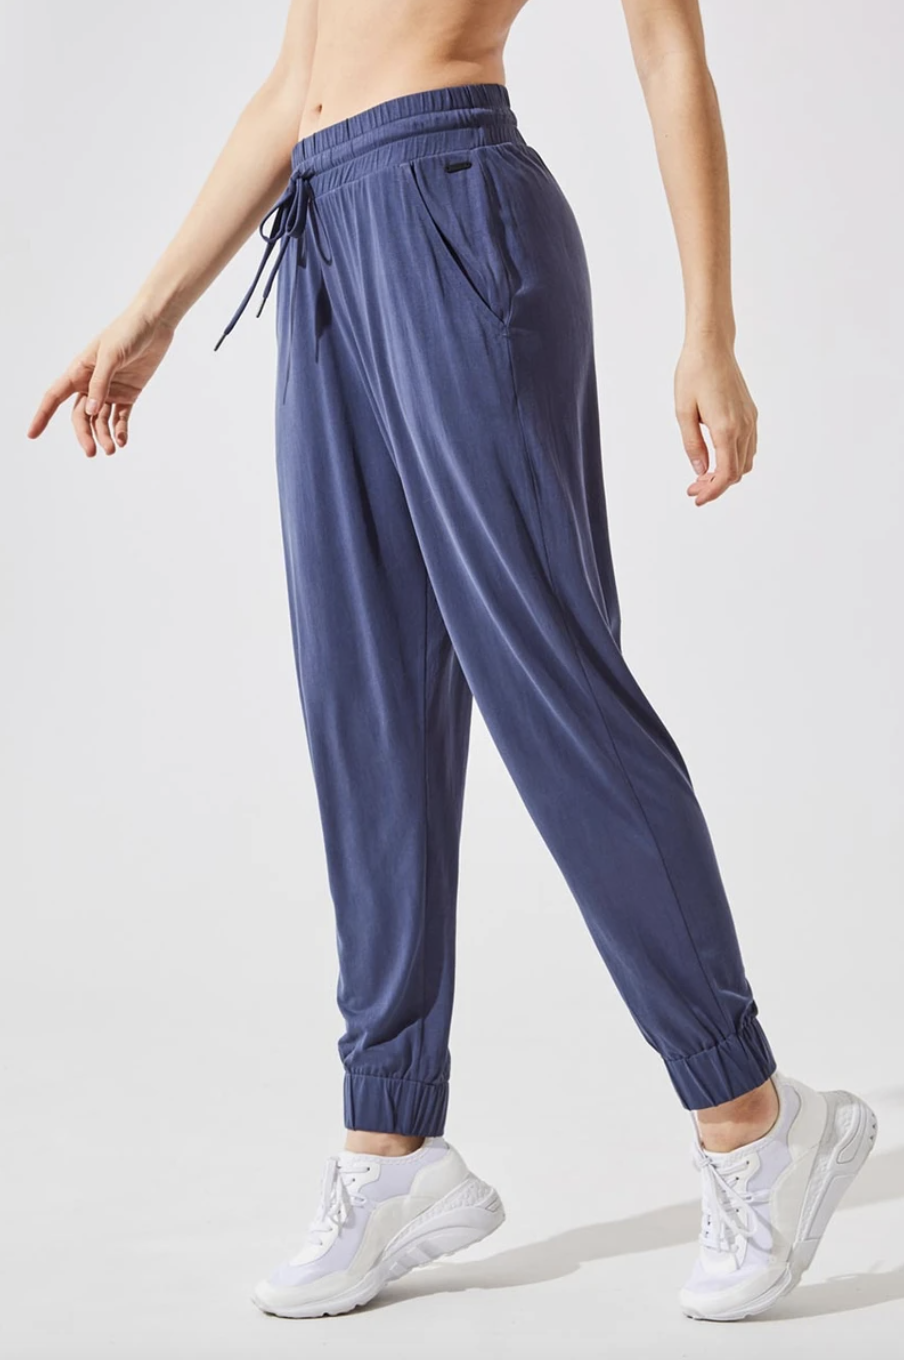 Stride On Natural Modal Relaxed Pant in Teal (Photo via MPG)